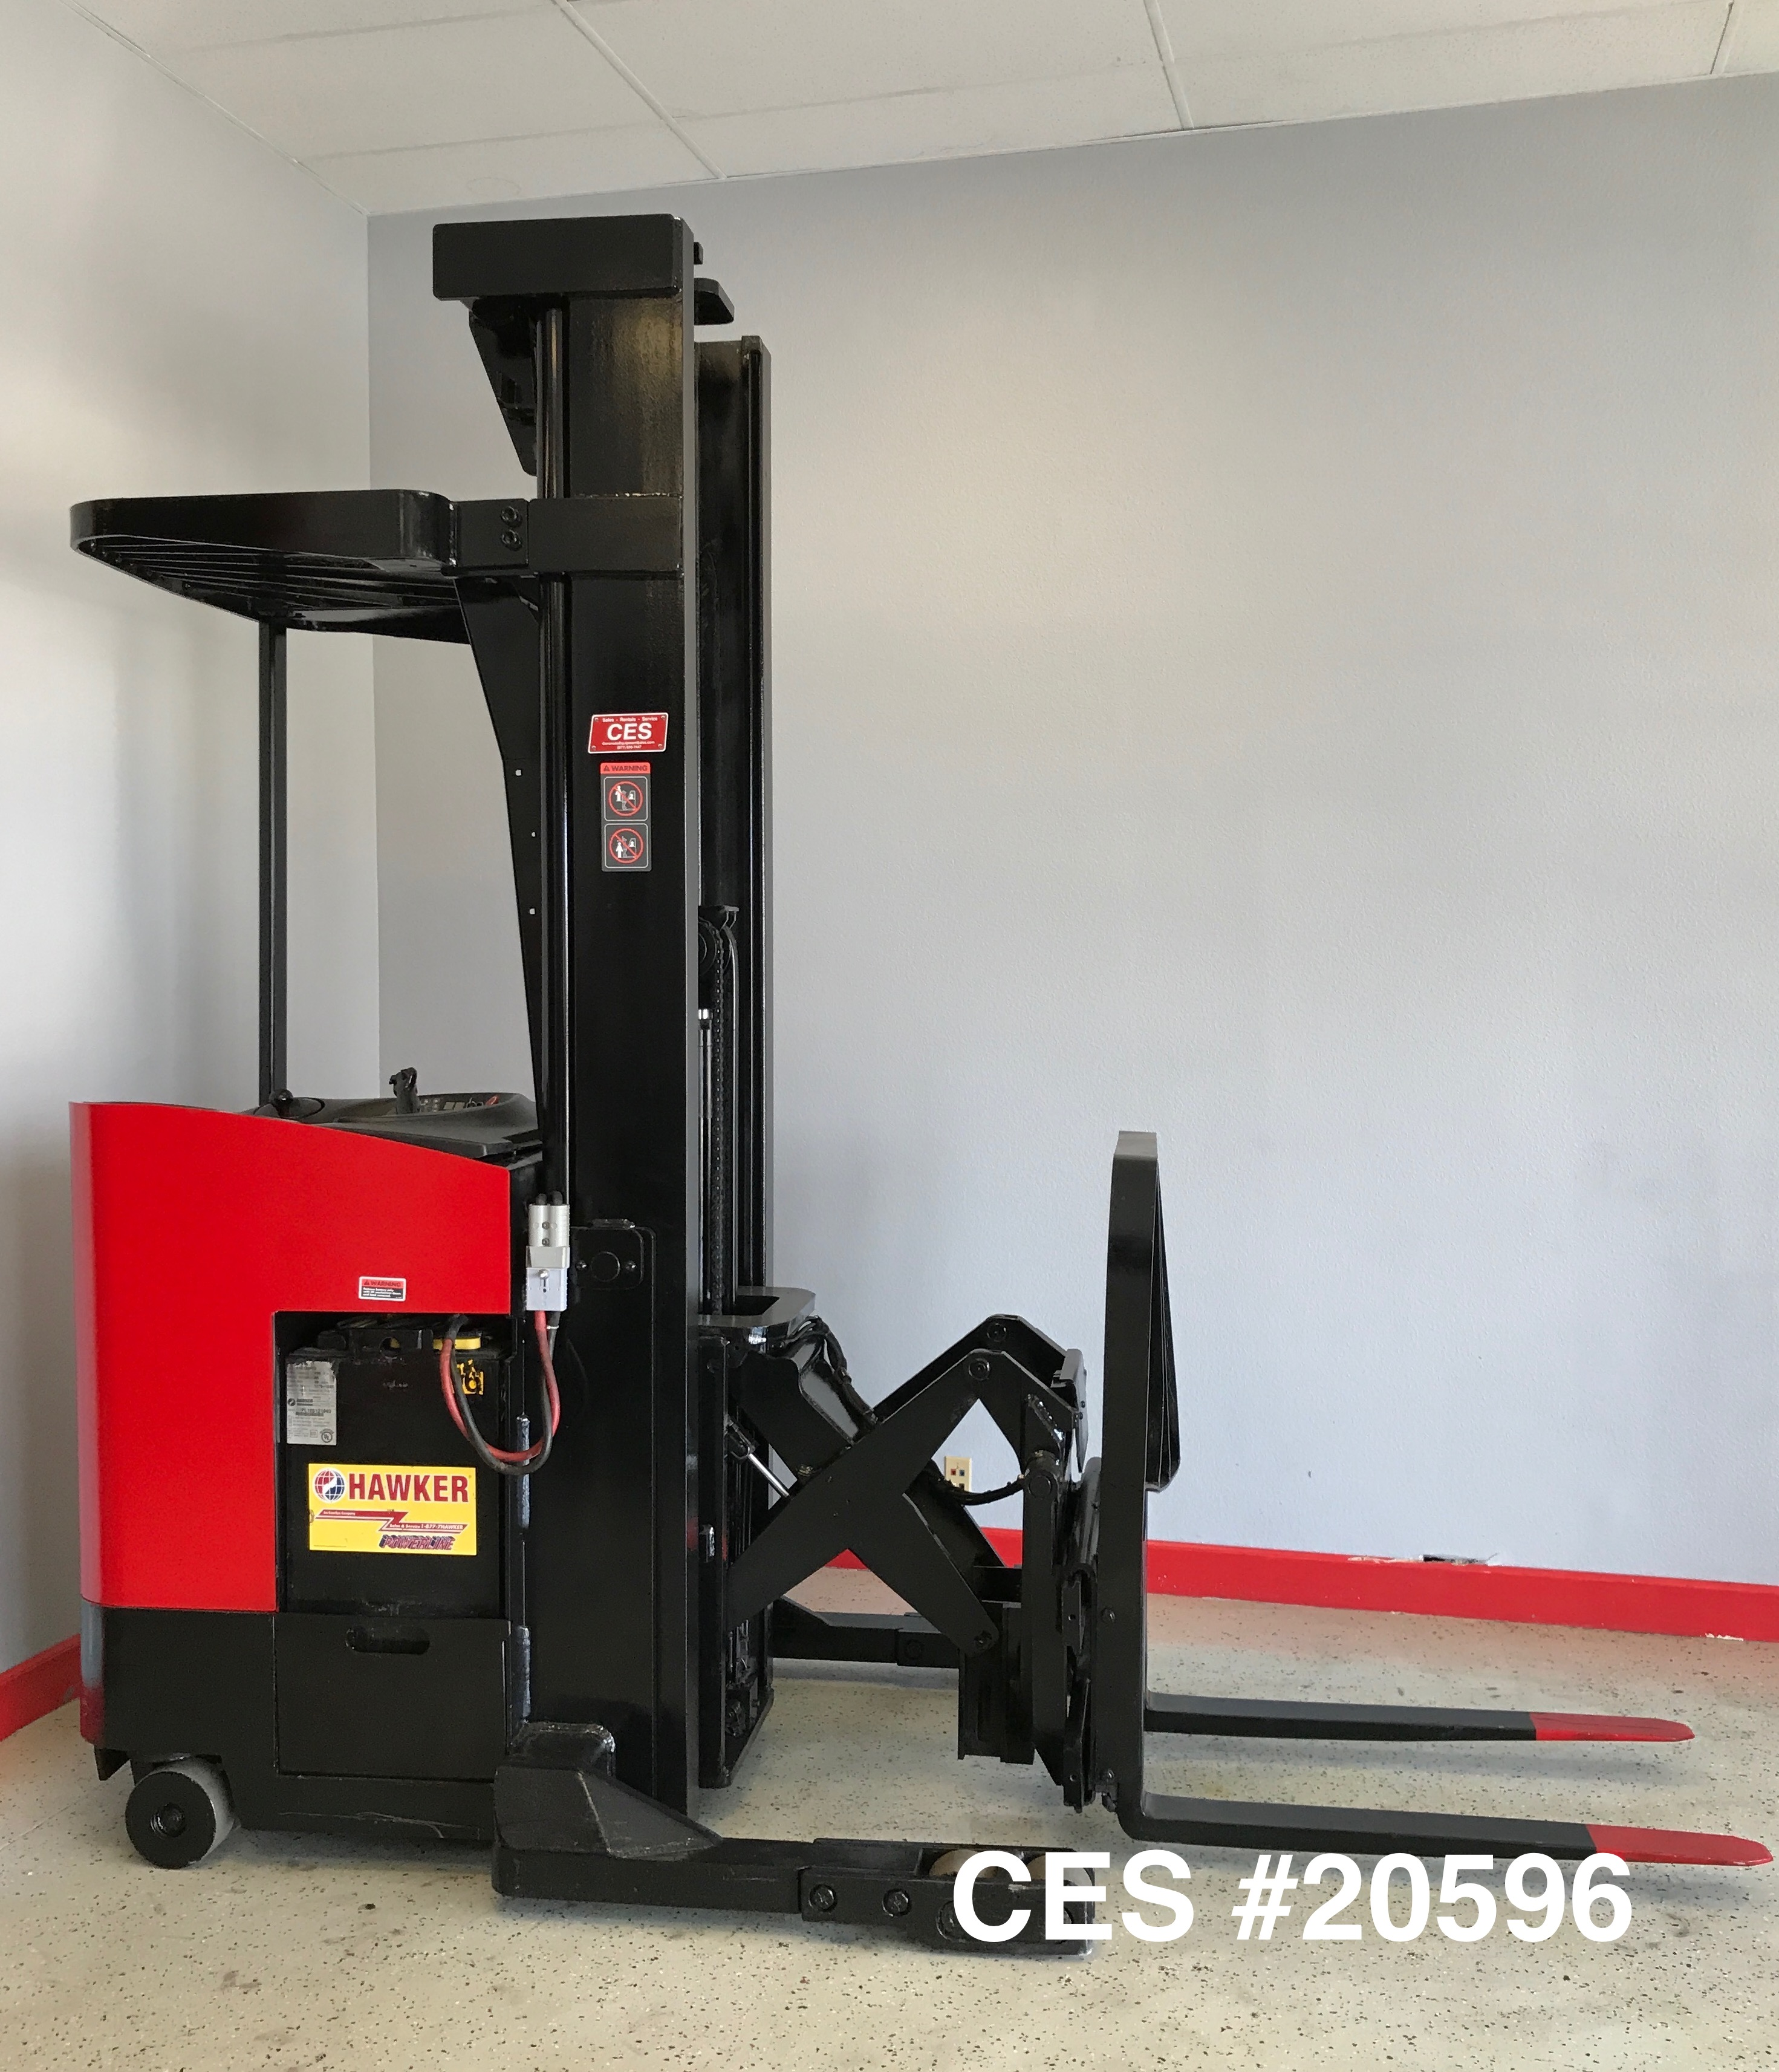 Yale Forklift Error Codes 2 Hyster 45 Wiring Diagram Understanding Resolve Them Learn We Can Help Manage Materials Handling Needs Full Set Pdf Parts Manuals Auto Repair Your Laptop Or Computer Is Expected